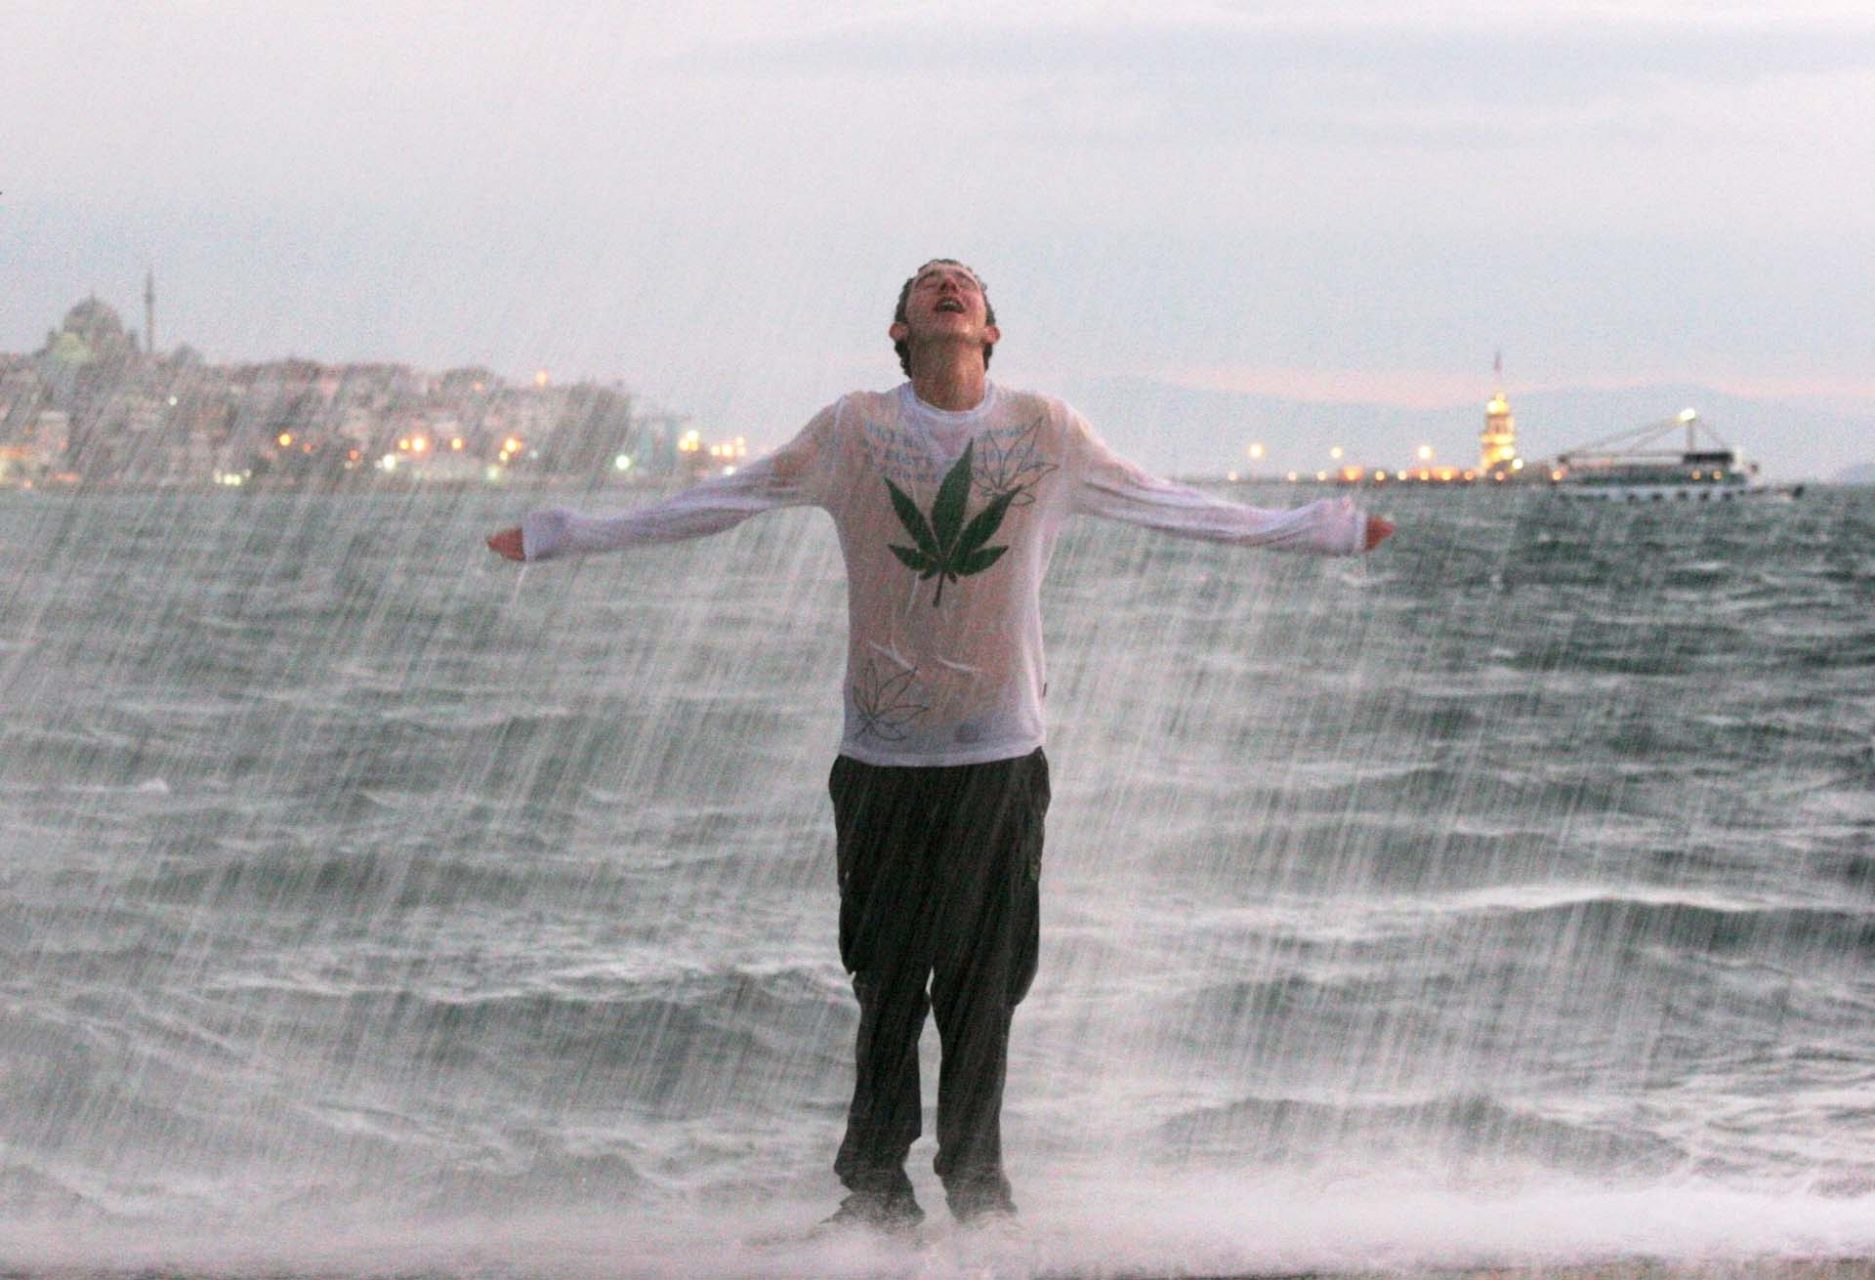 Bosporus waves provide a natural shower in Beşiktaş